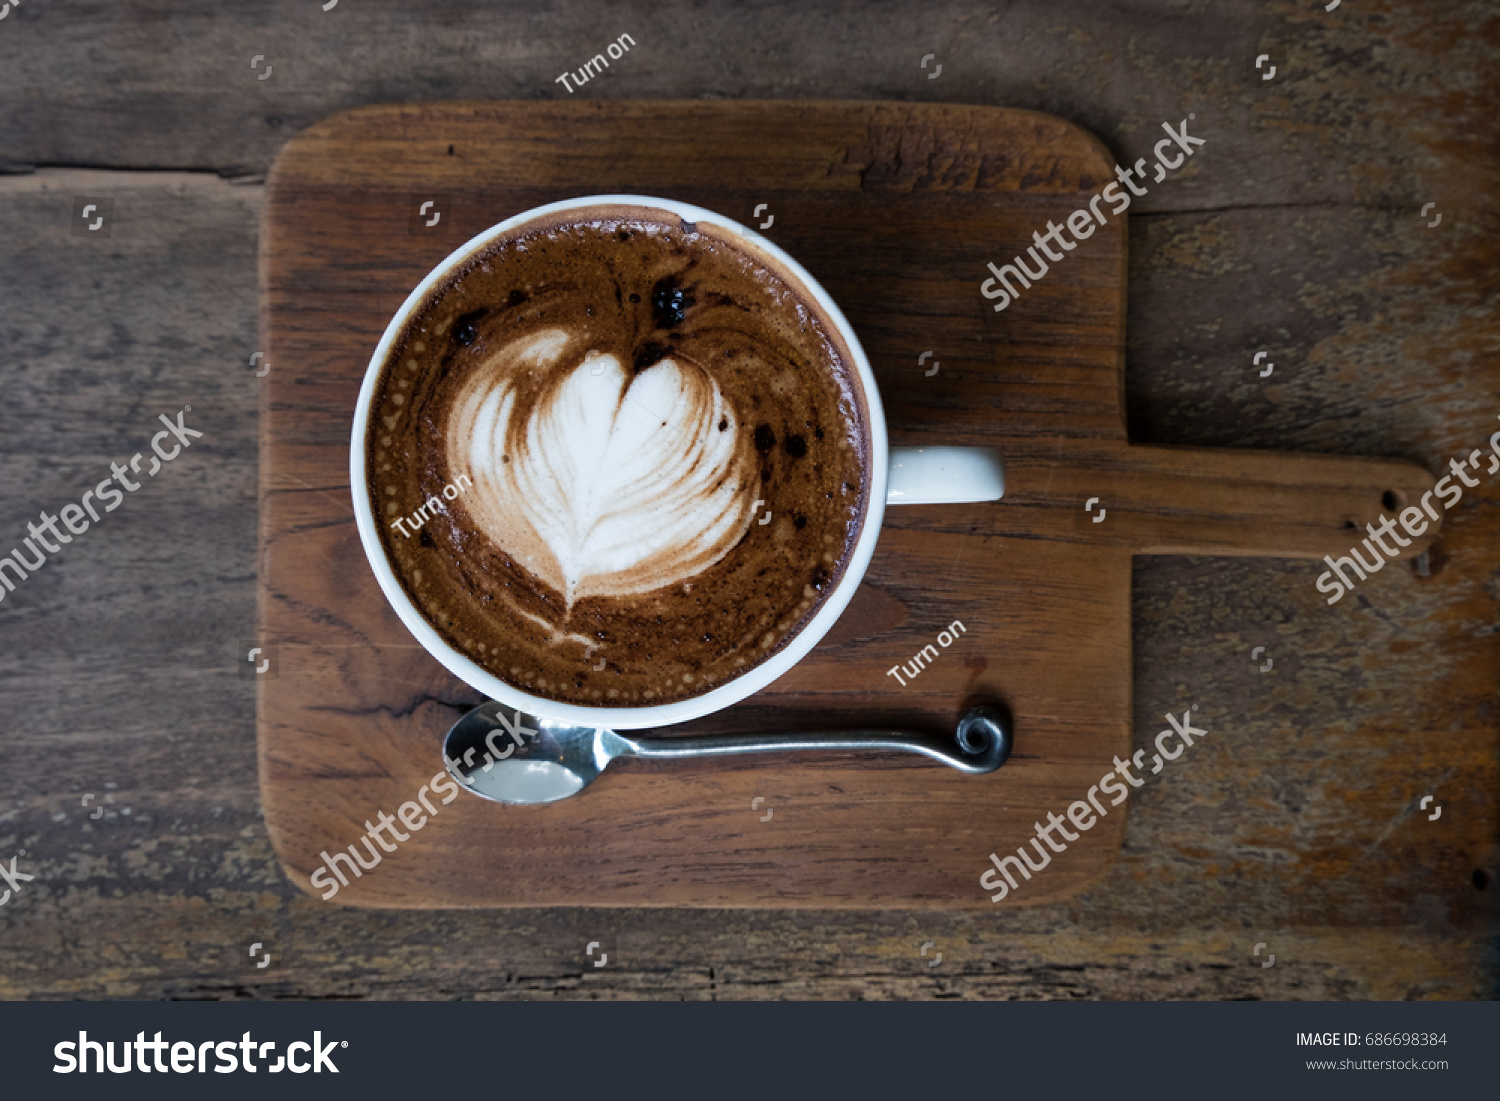 Mocha coffee on wooden table #686698384